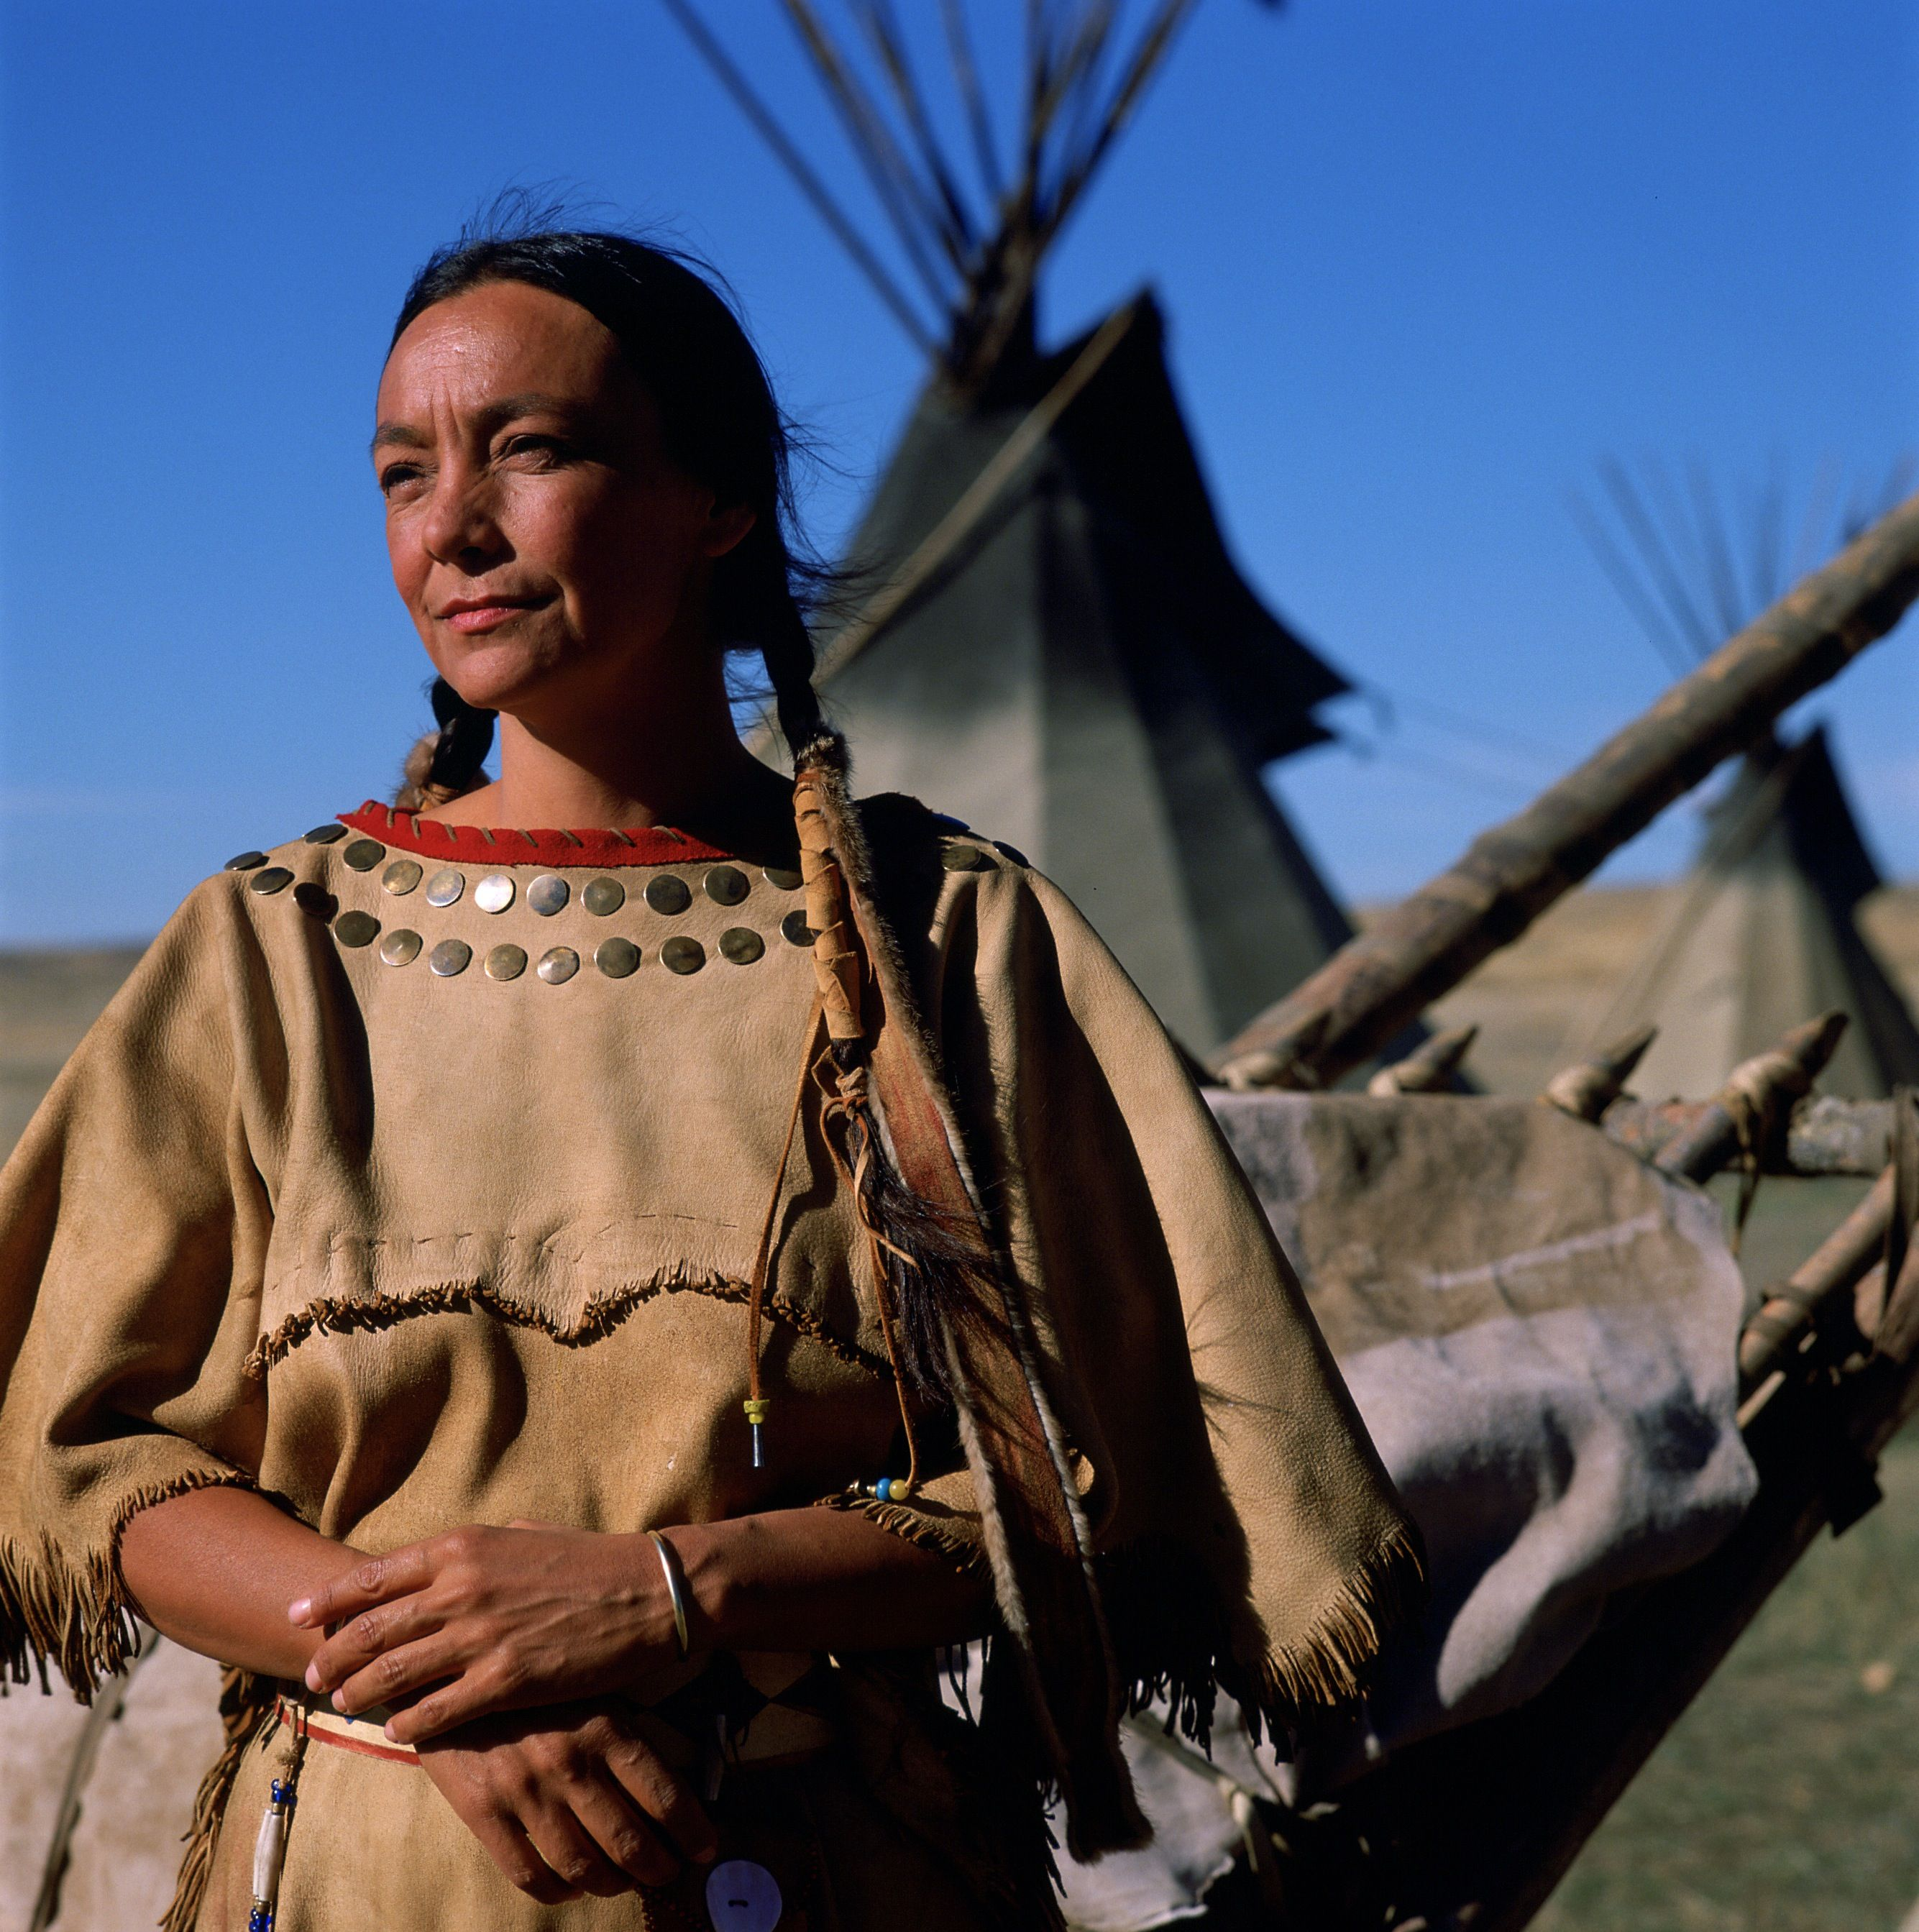 cff2bb0aa55 Dances with Wolves (1990) | Dances with Wolves | Dances with wolves ...